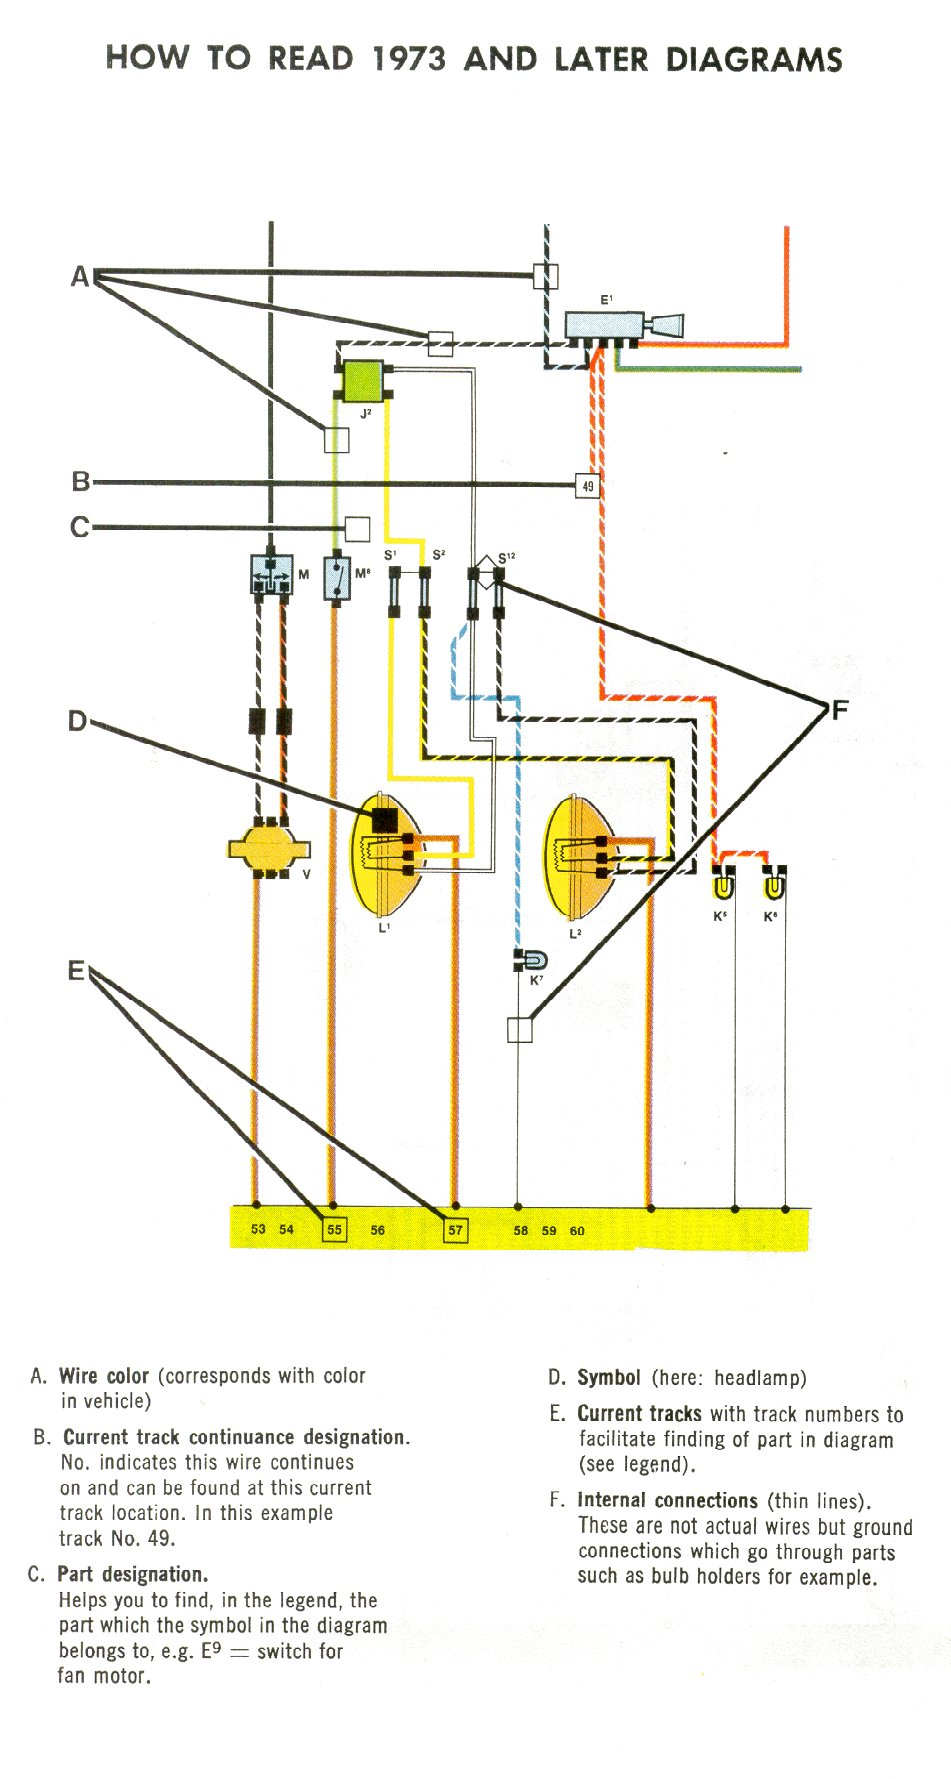 75 Beetle Wiring Diagram Automotive Schematic Symbols Legend Note That The Primary Harness For Car Does Not Support Fuel Injection System It Has Its Own Afterthought Engineered Scabbed In